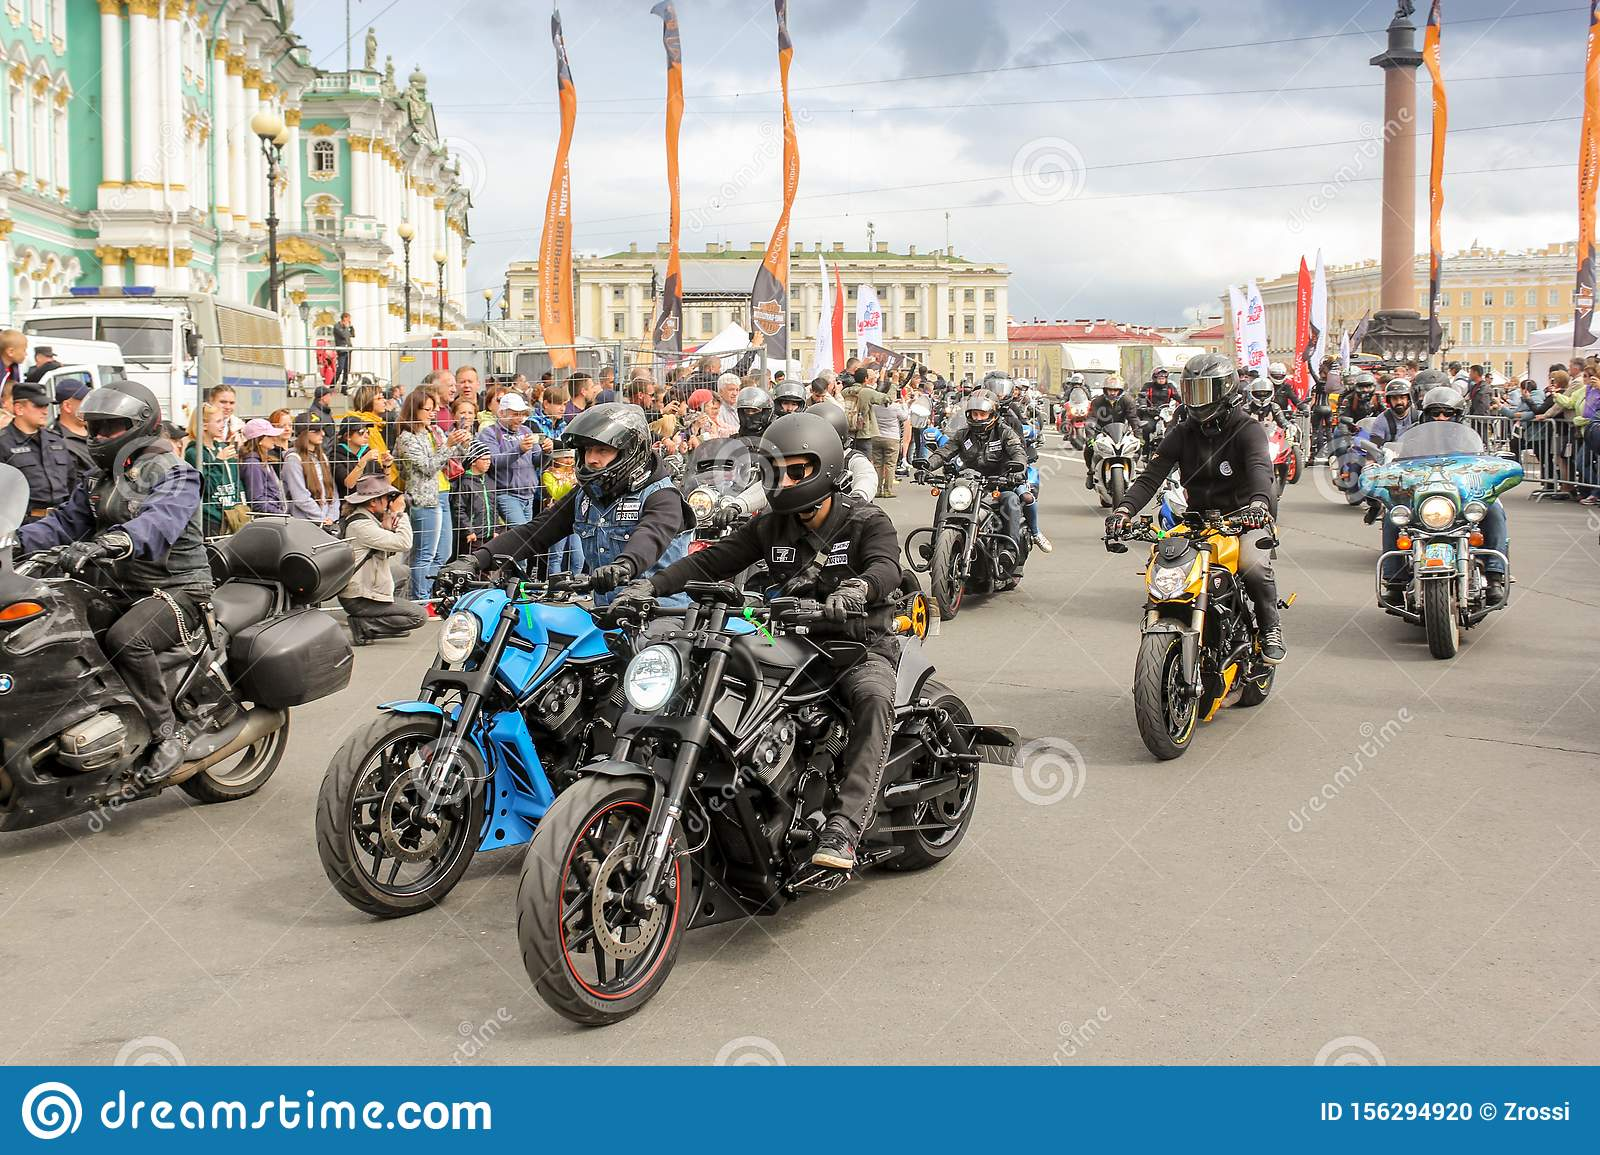 Start of the rally on Palace Square